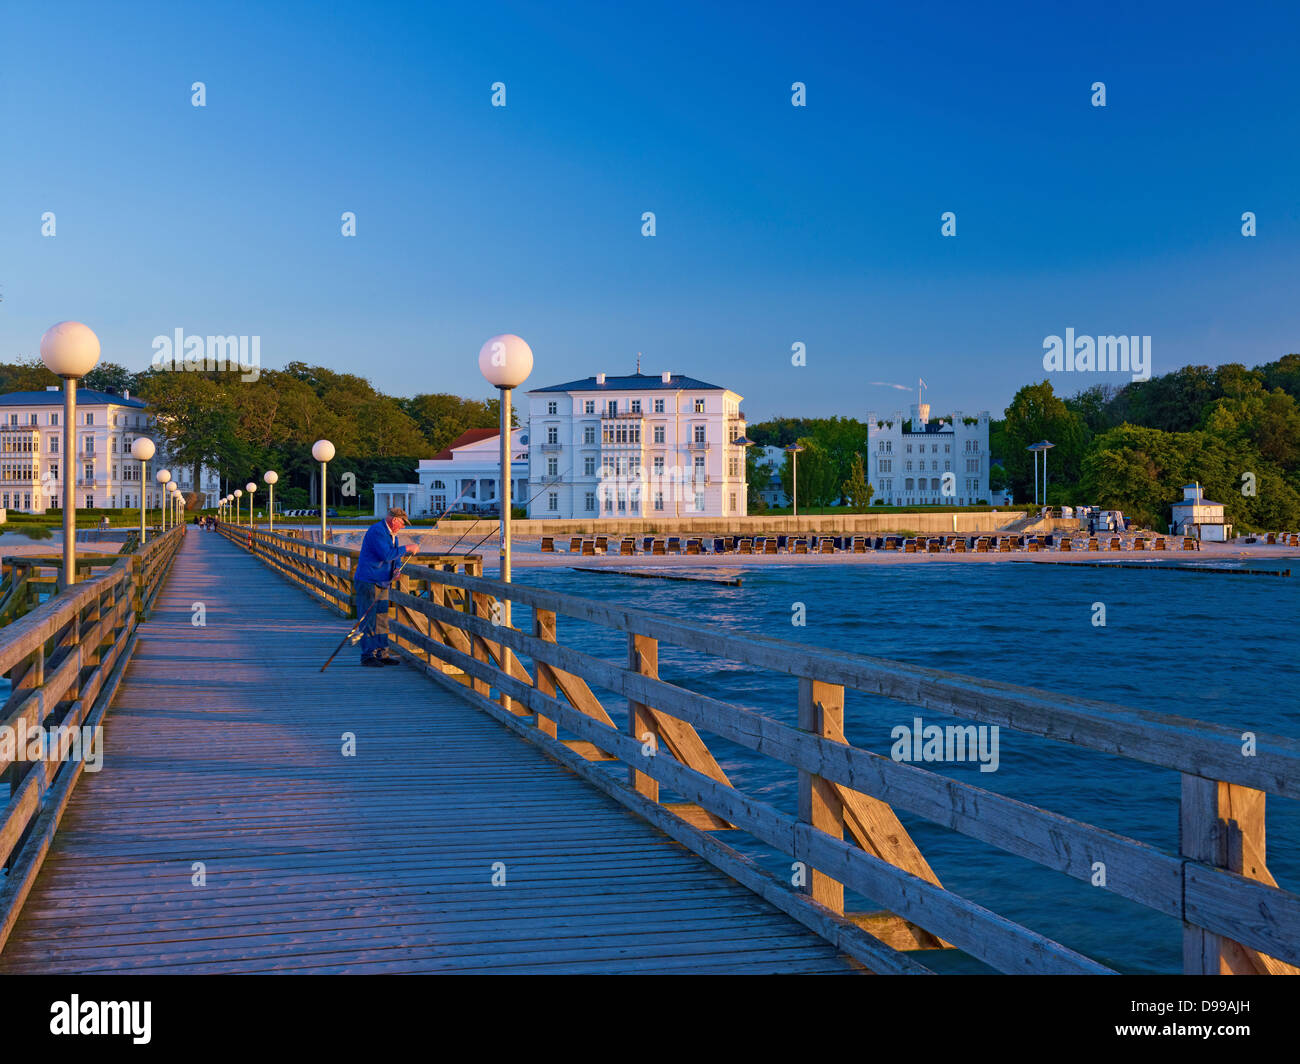 Pier, seaside resort of Heiligendamm, Mecklenburg-Western Pomerania, Germany - Stock Image